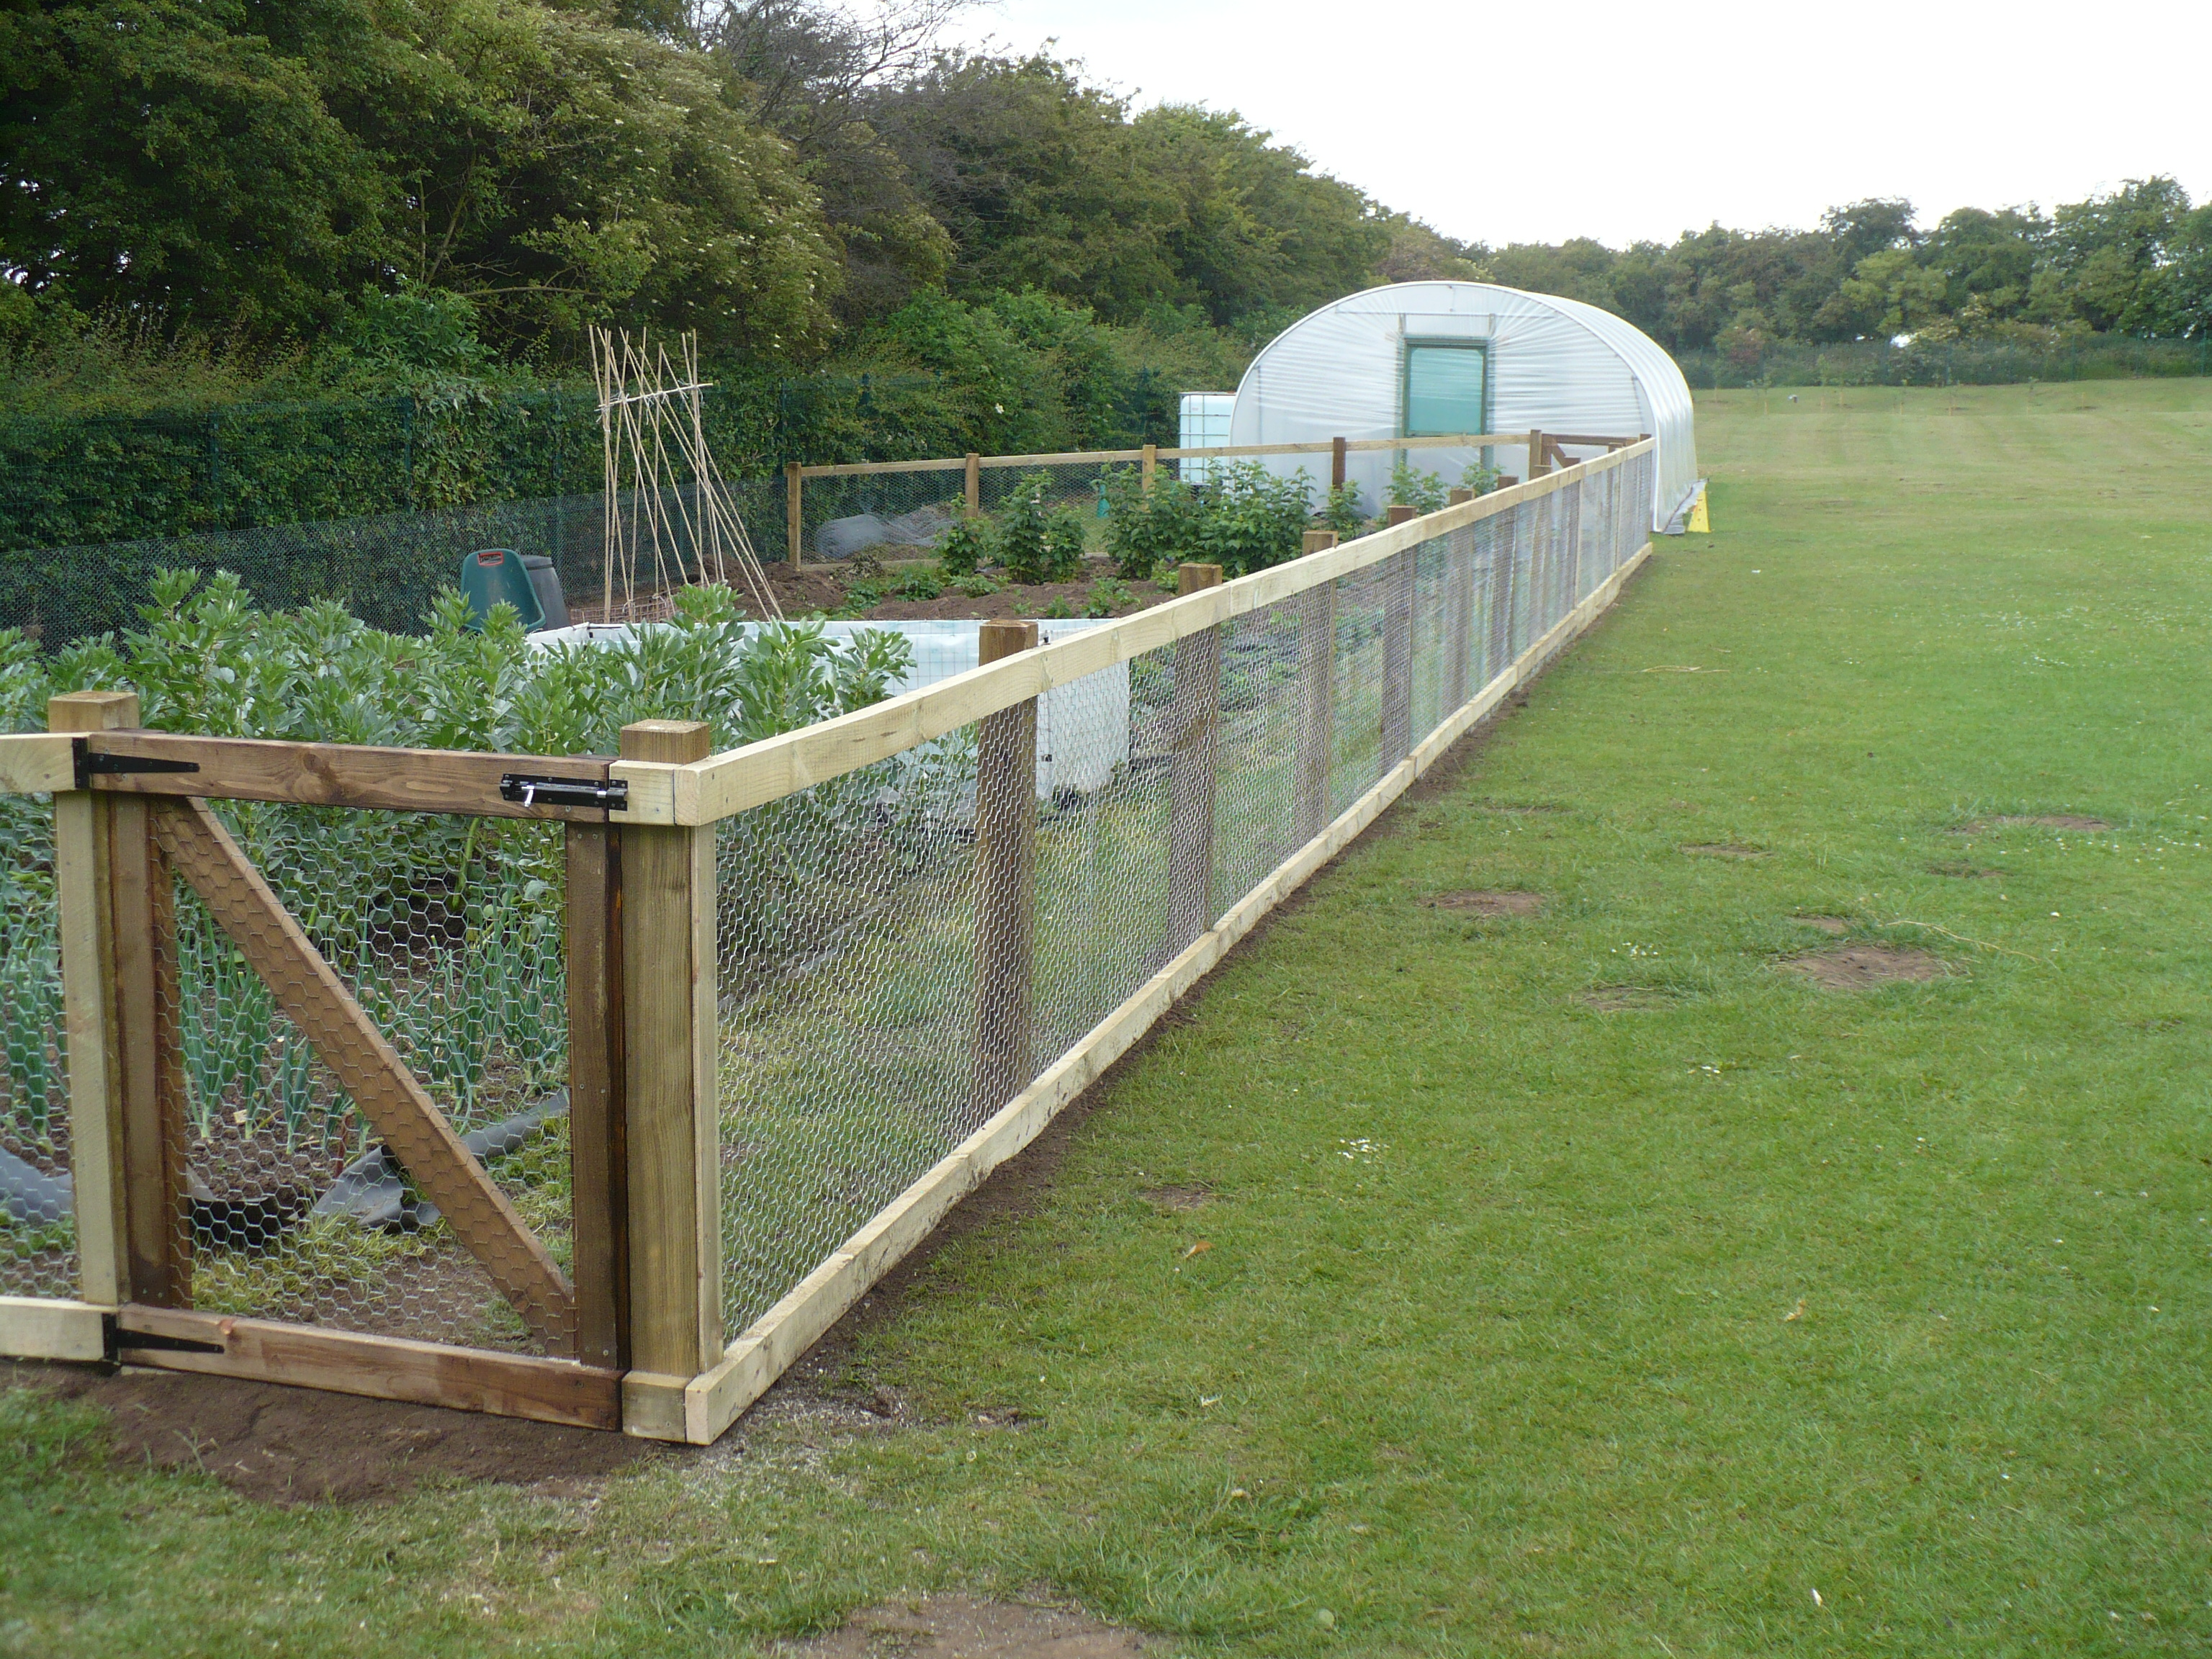 Home vegetable garden fence - Greener Places